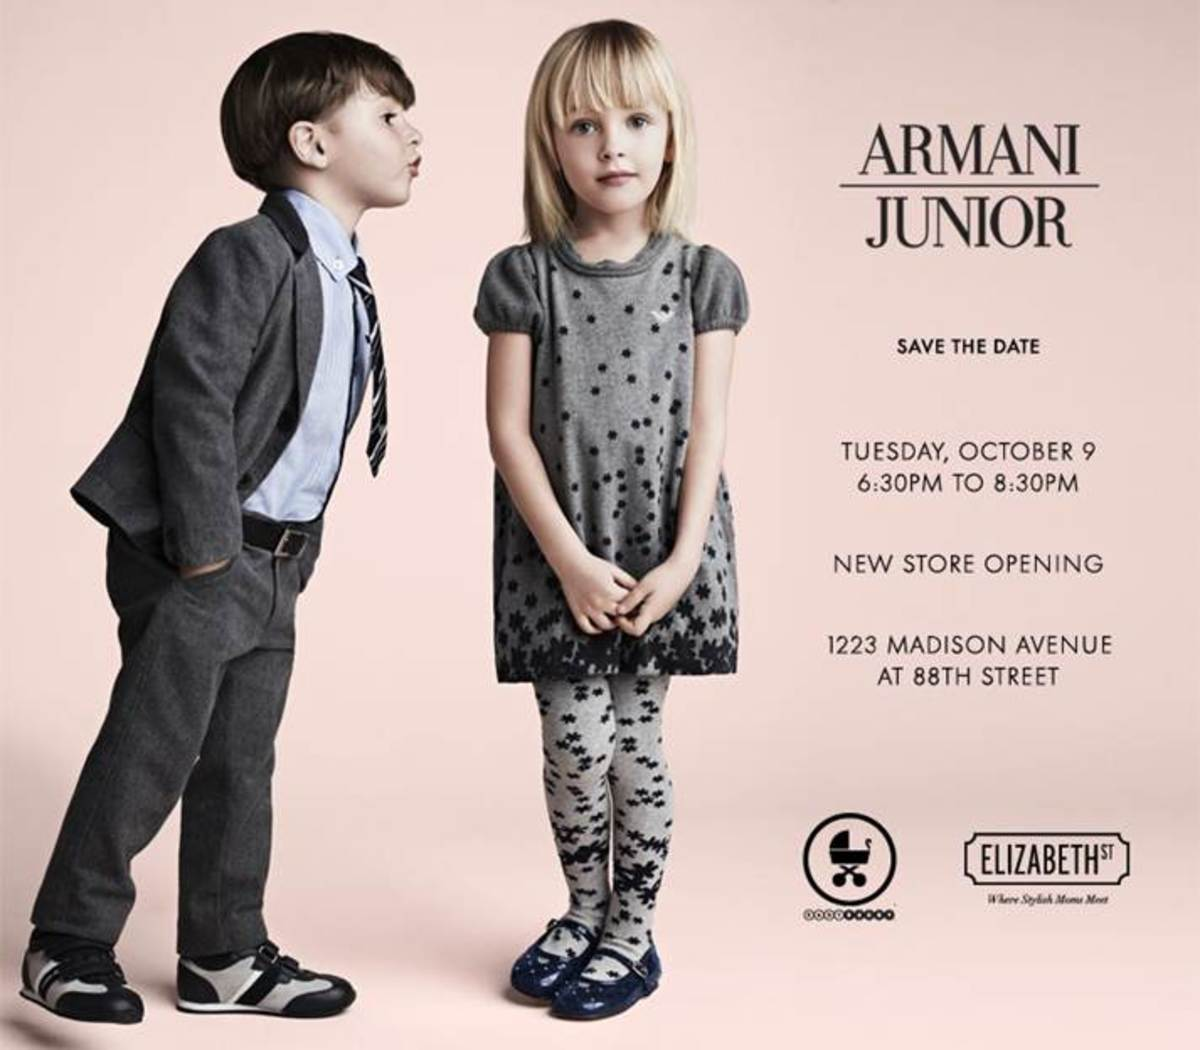 Armani Junior Invite